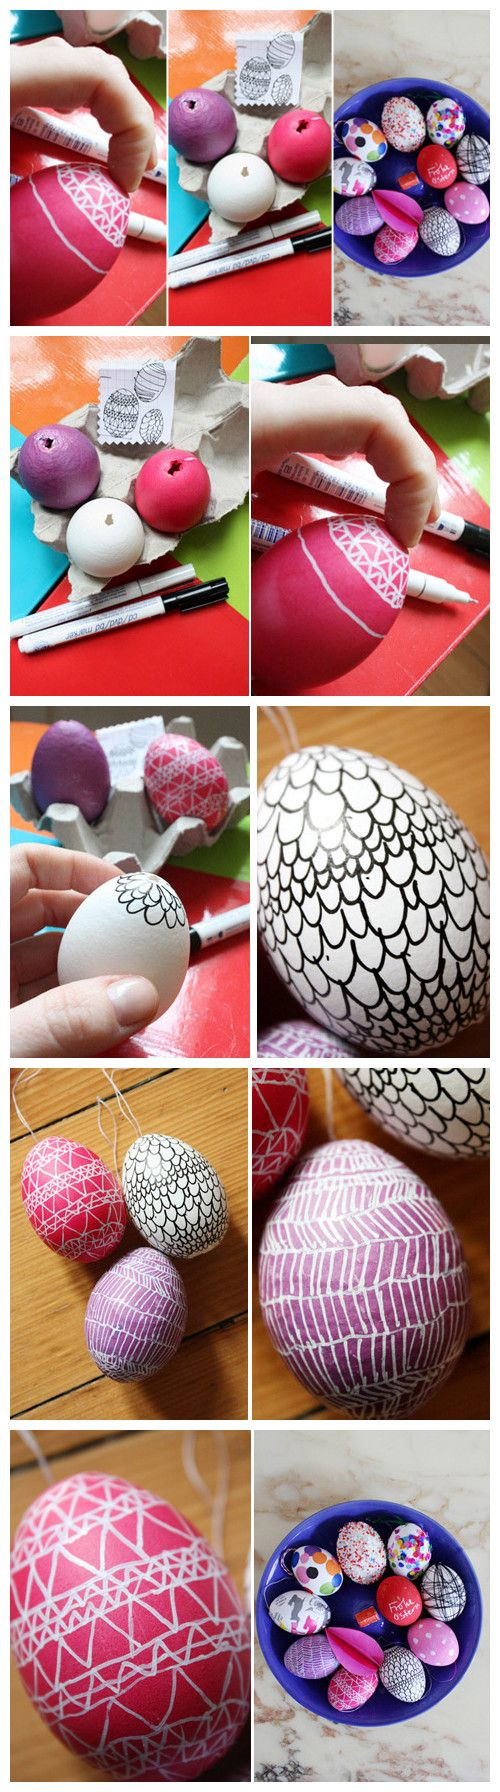 Easter eggs coming.  Rinse after cracking the top of the eggs emptied eggs and dried and then you can start your painting work friends to play your creativity.